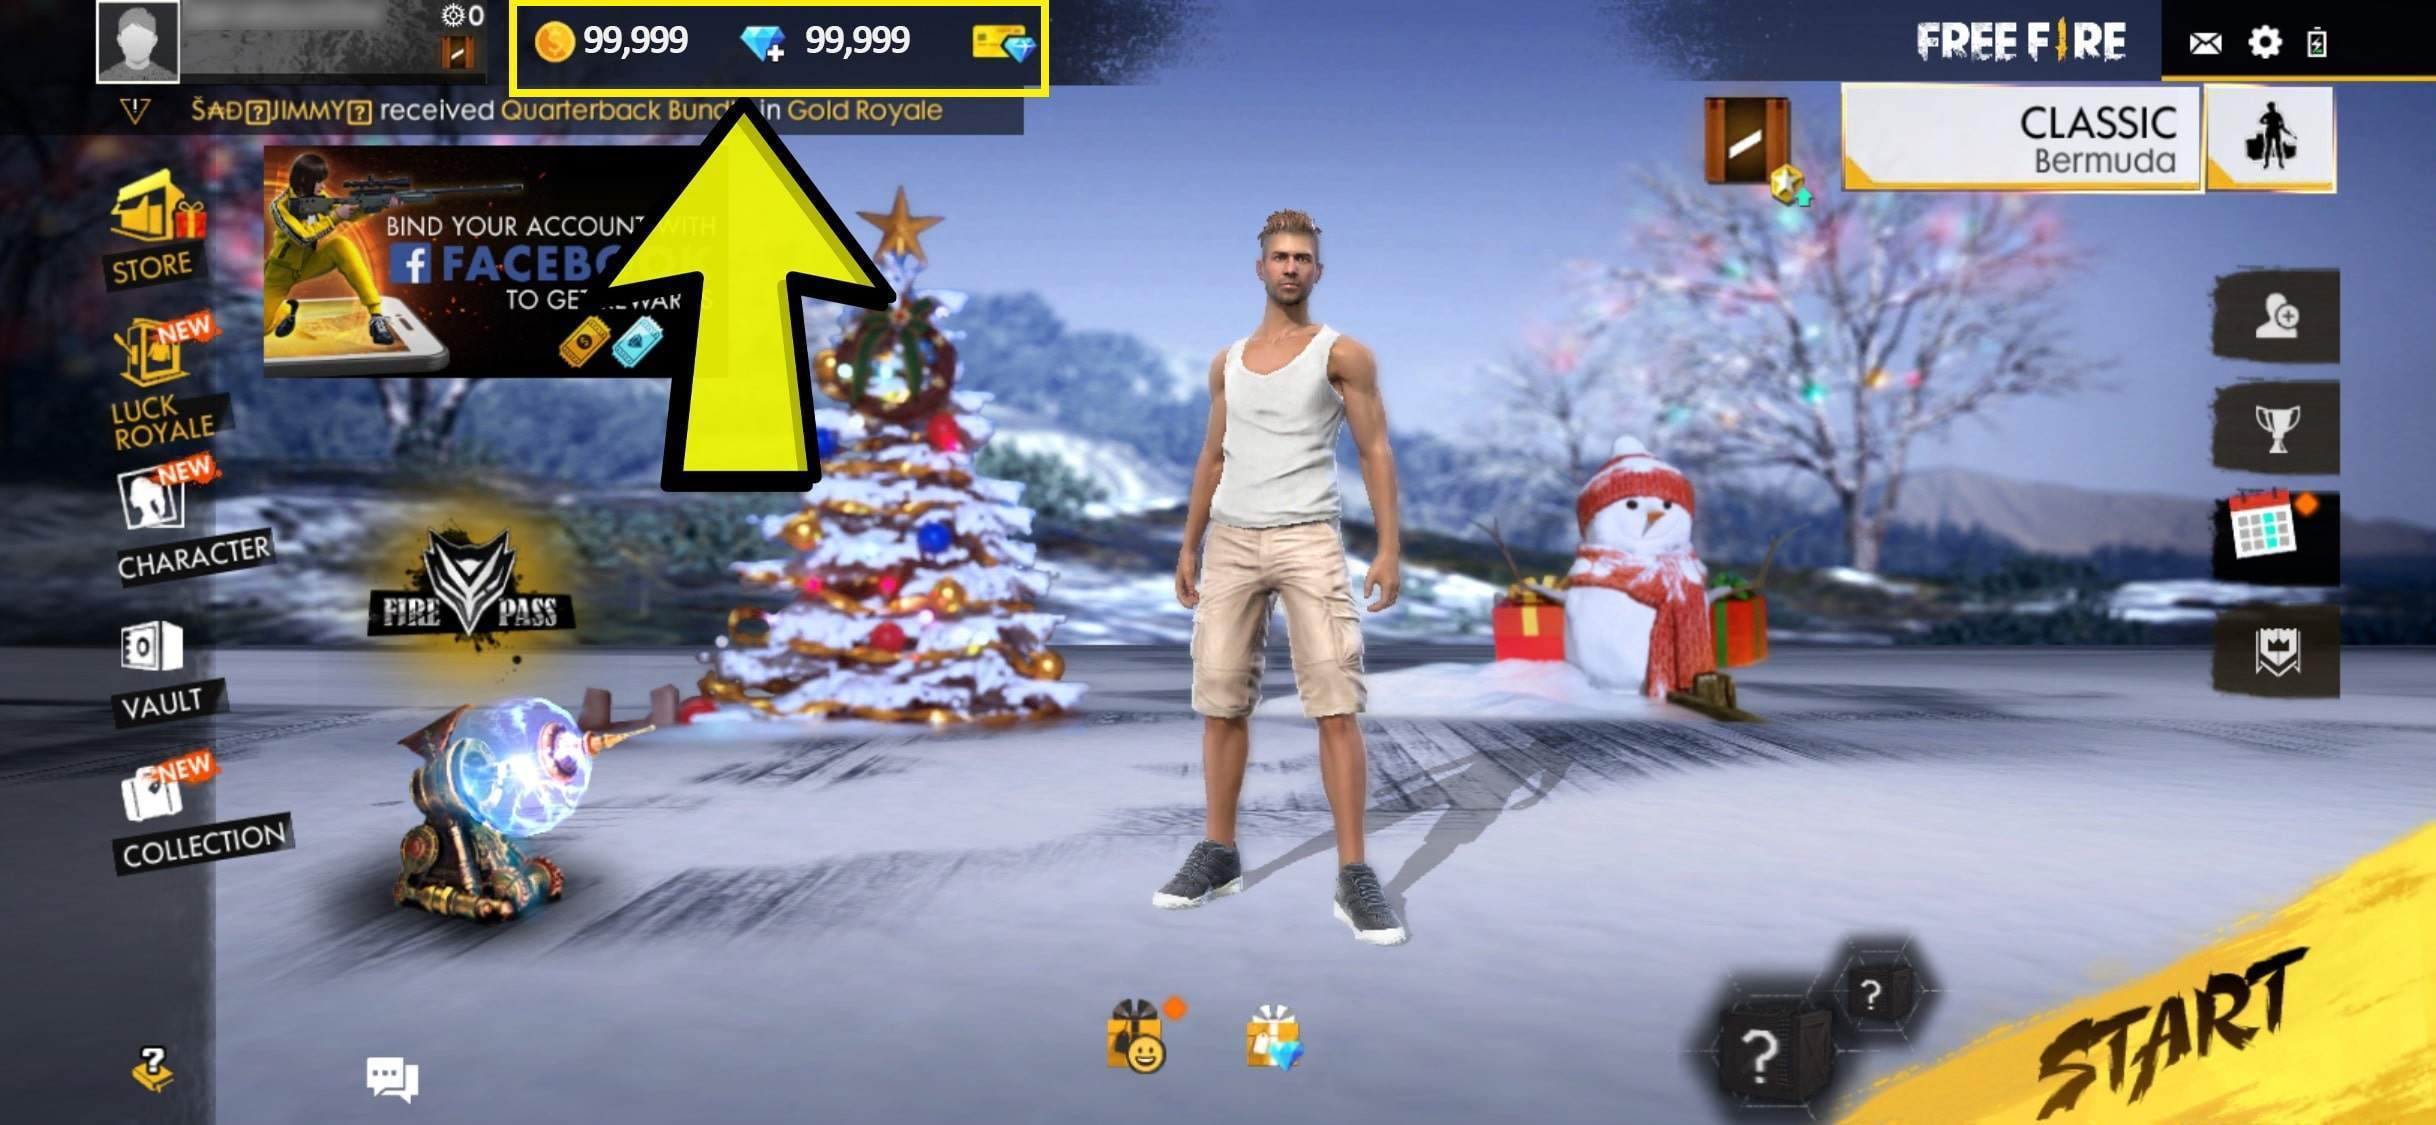 Get Freefire Unlimited Coins and Diamonds For Free! 100% Working [October 2020]